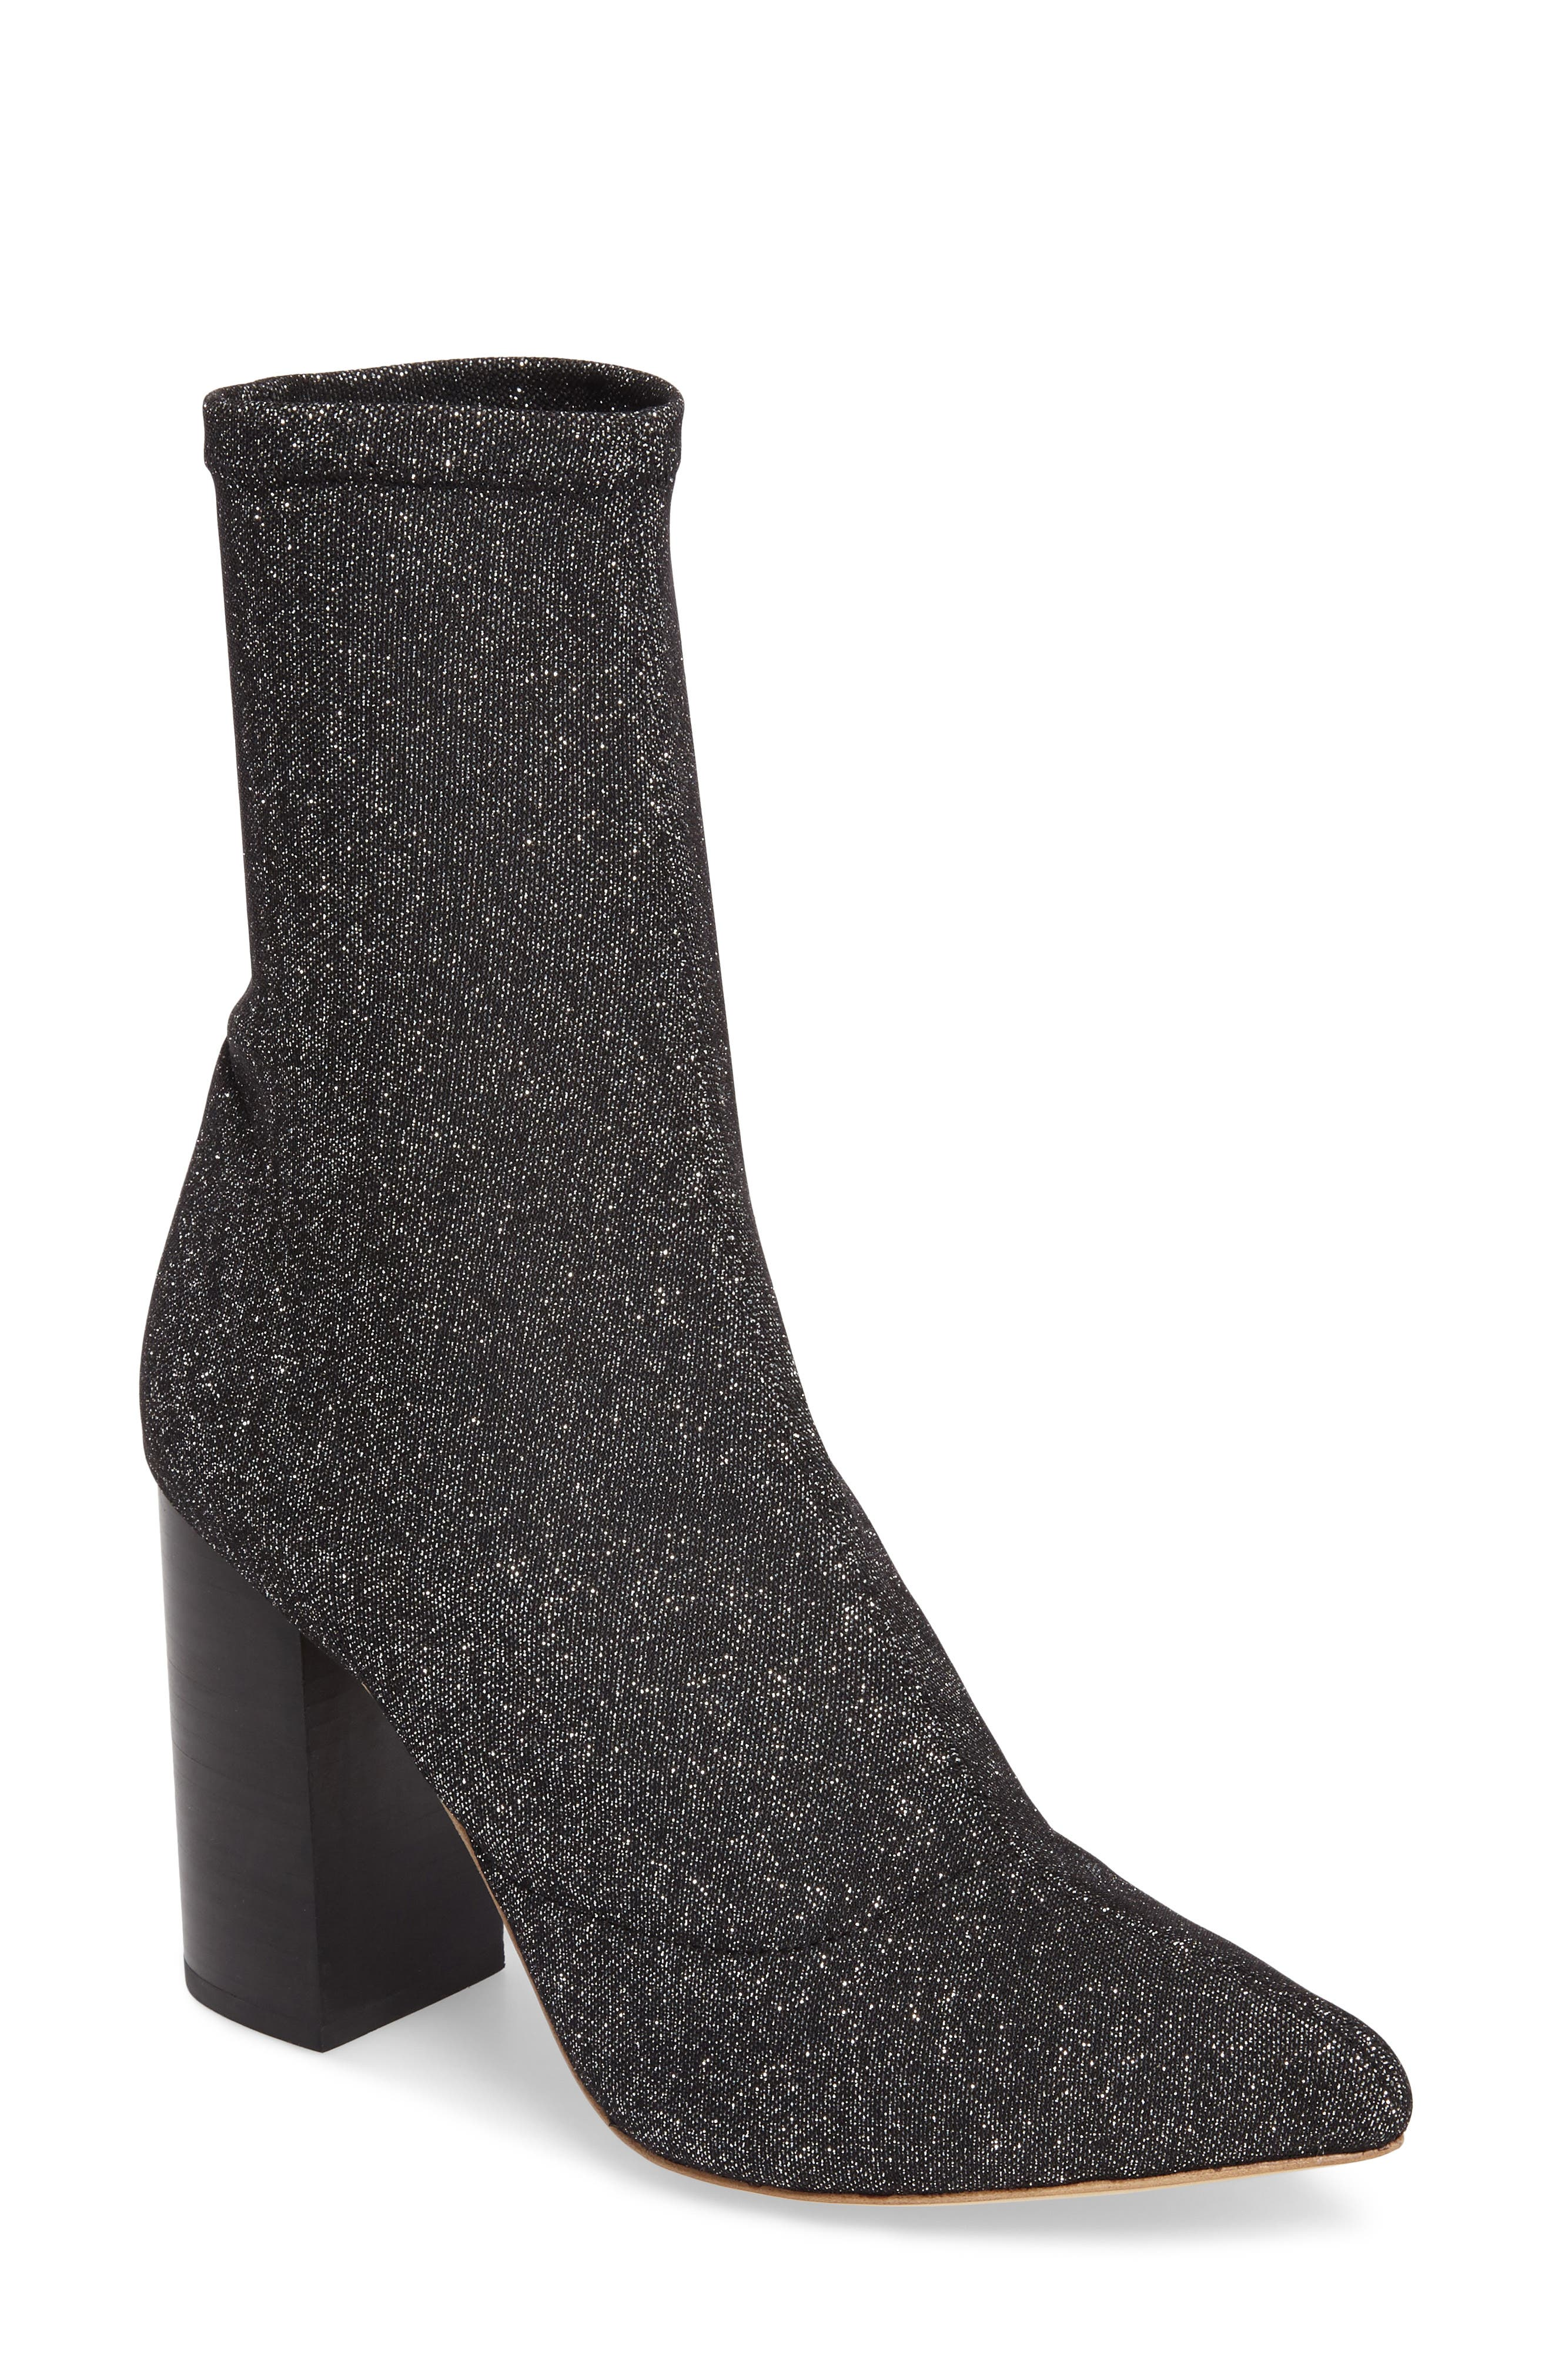 Fable Bootie,                         Main,                         color, Black Star Glitter